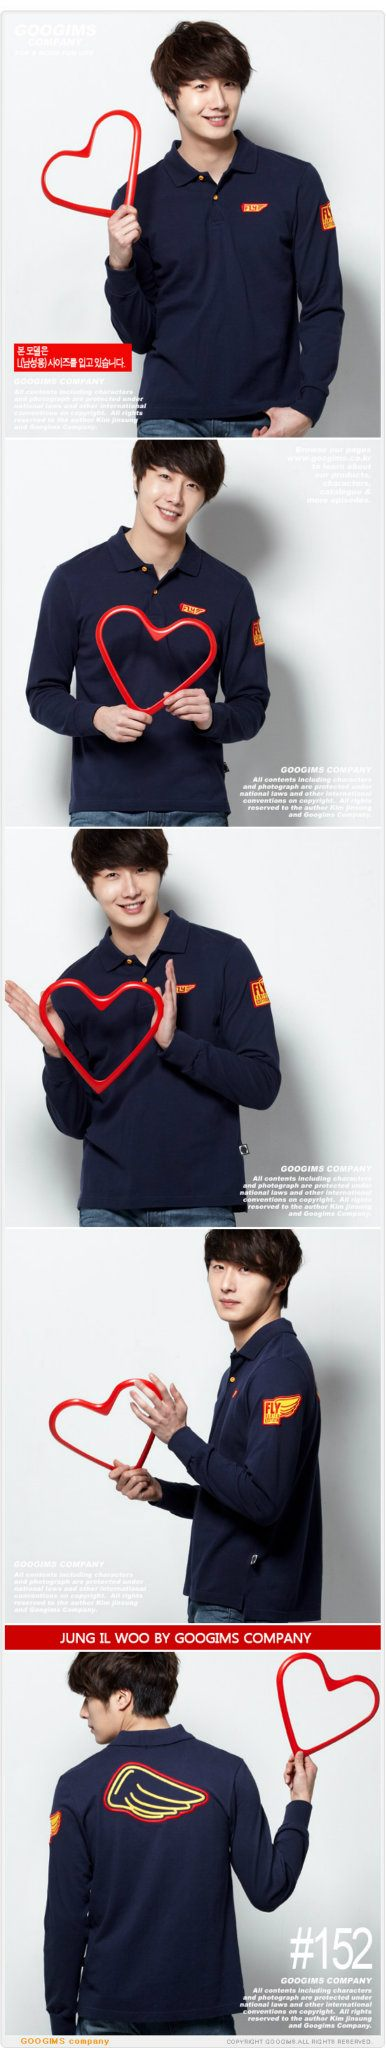 2011 10 Jung II-woo for Googims. Part 100038